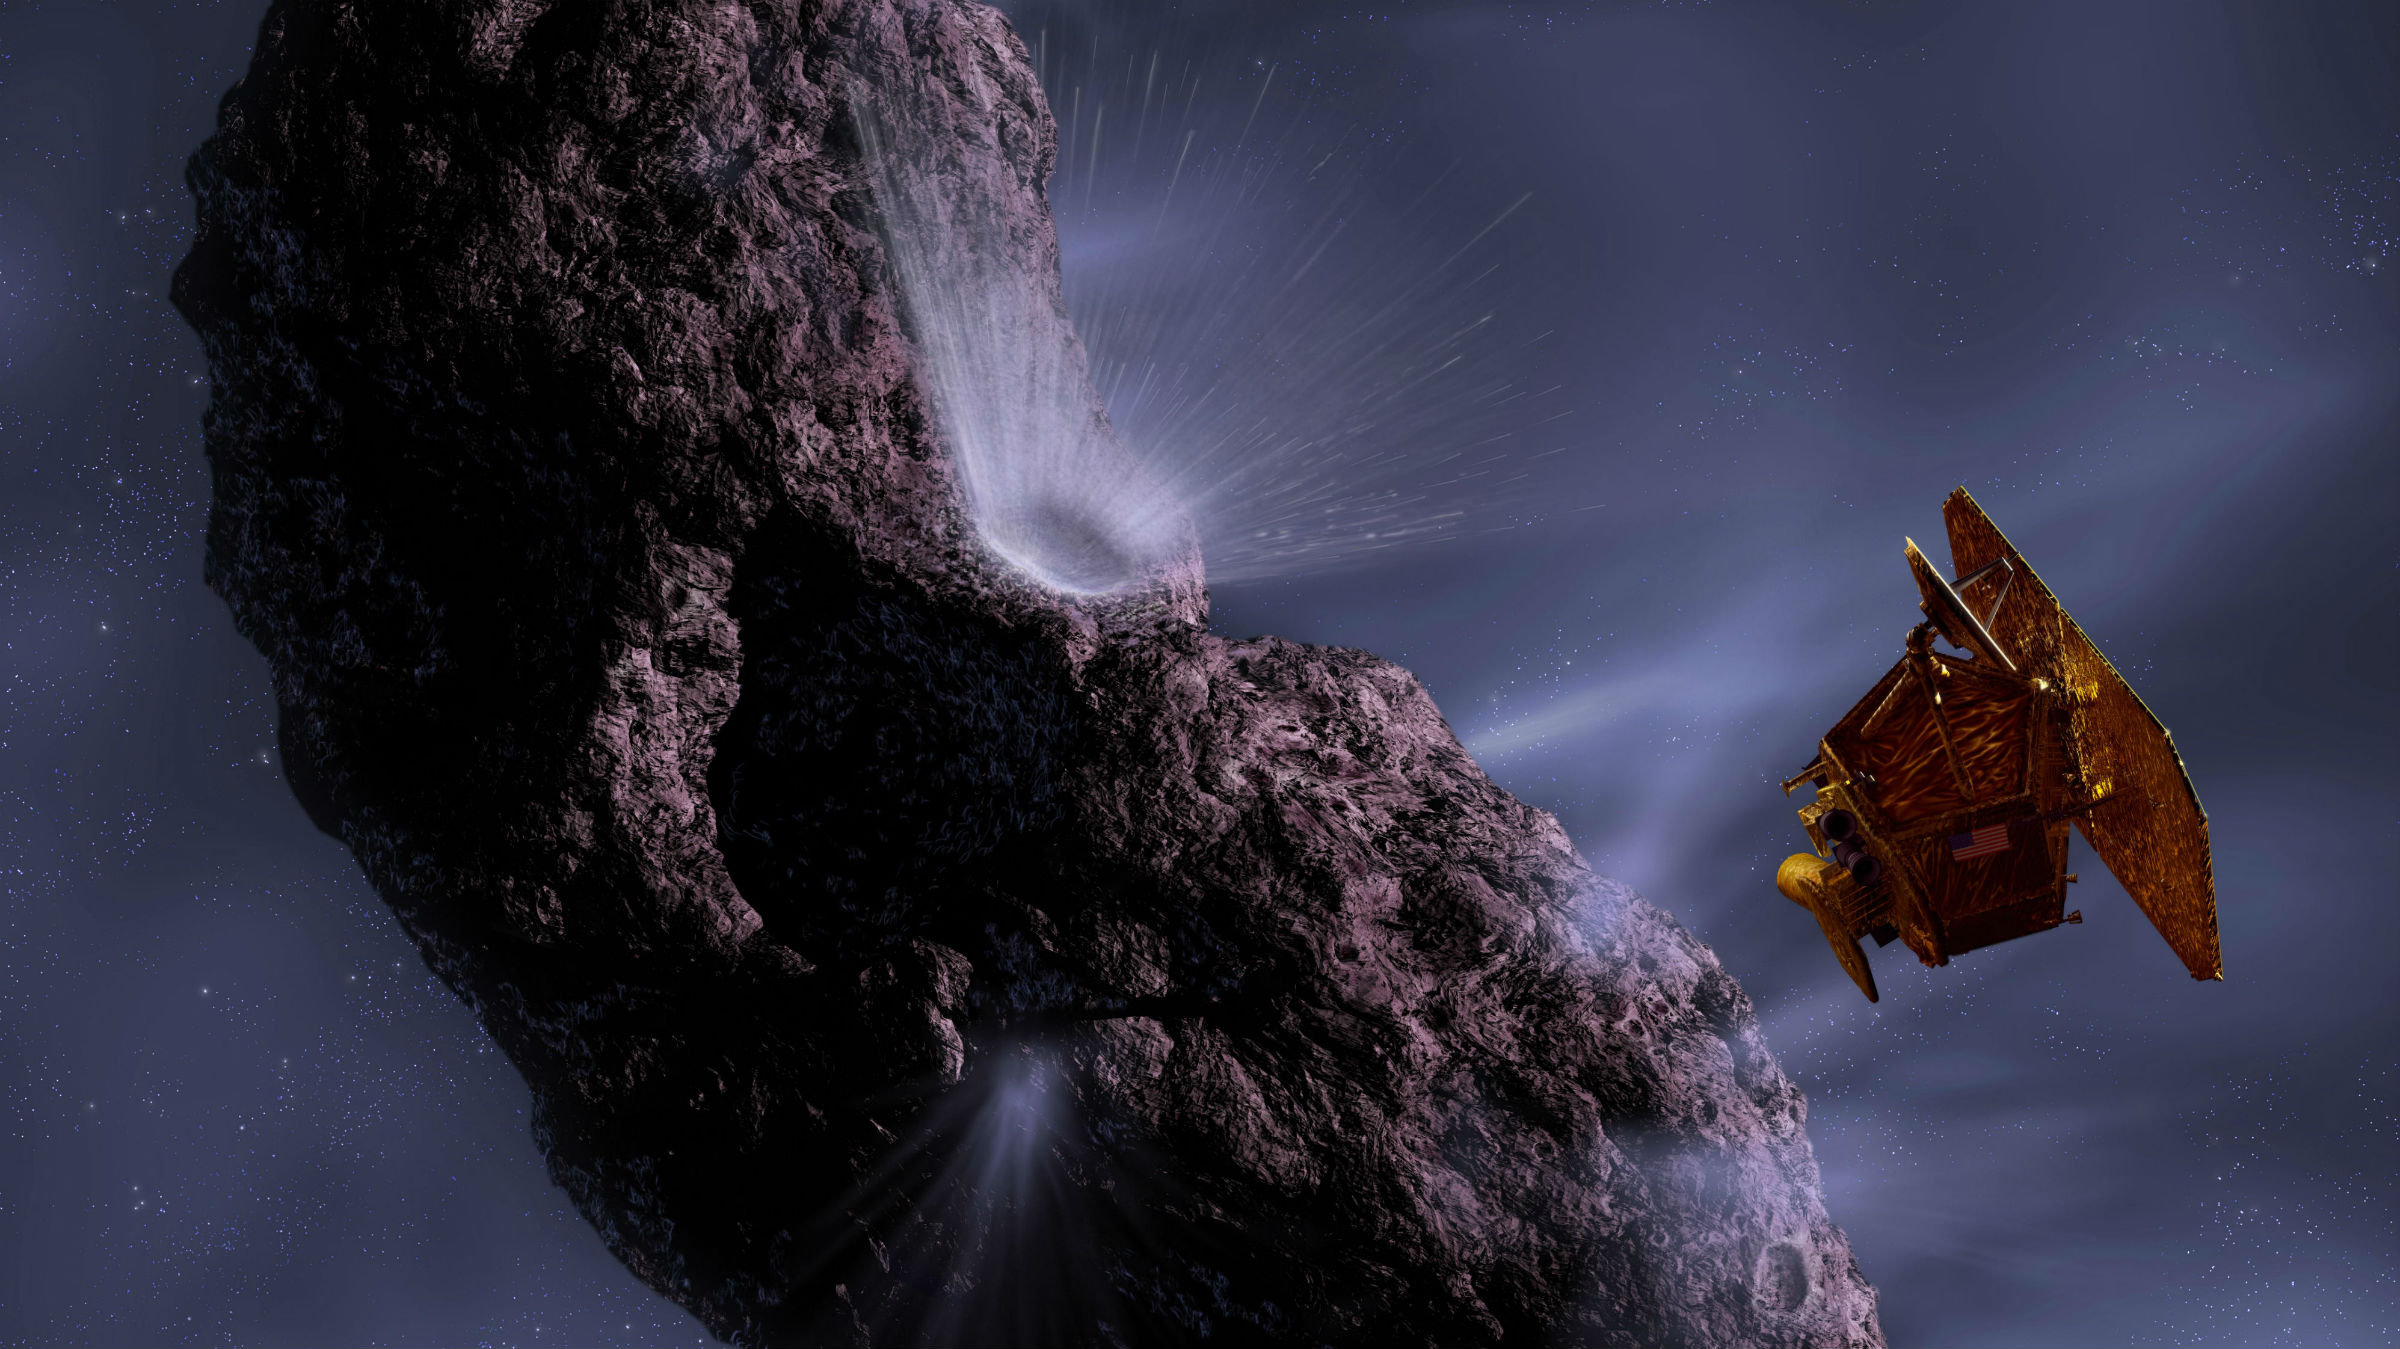 When it comes to asteroids, the Earth is basically defenseless